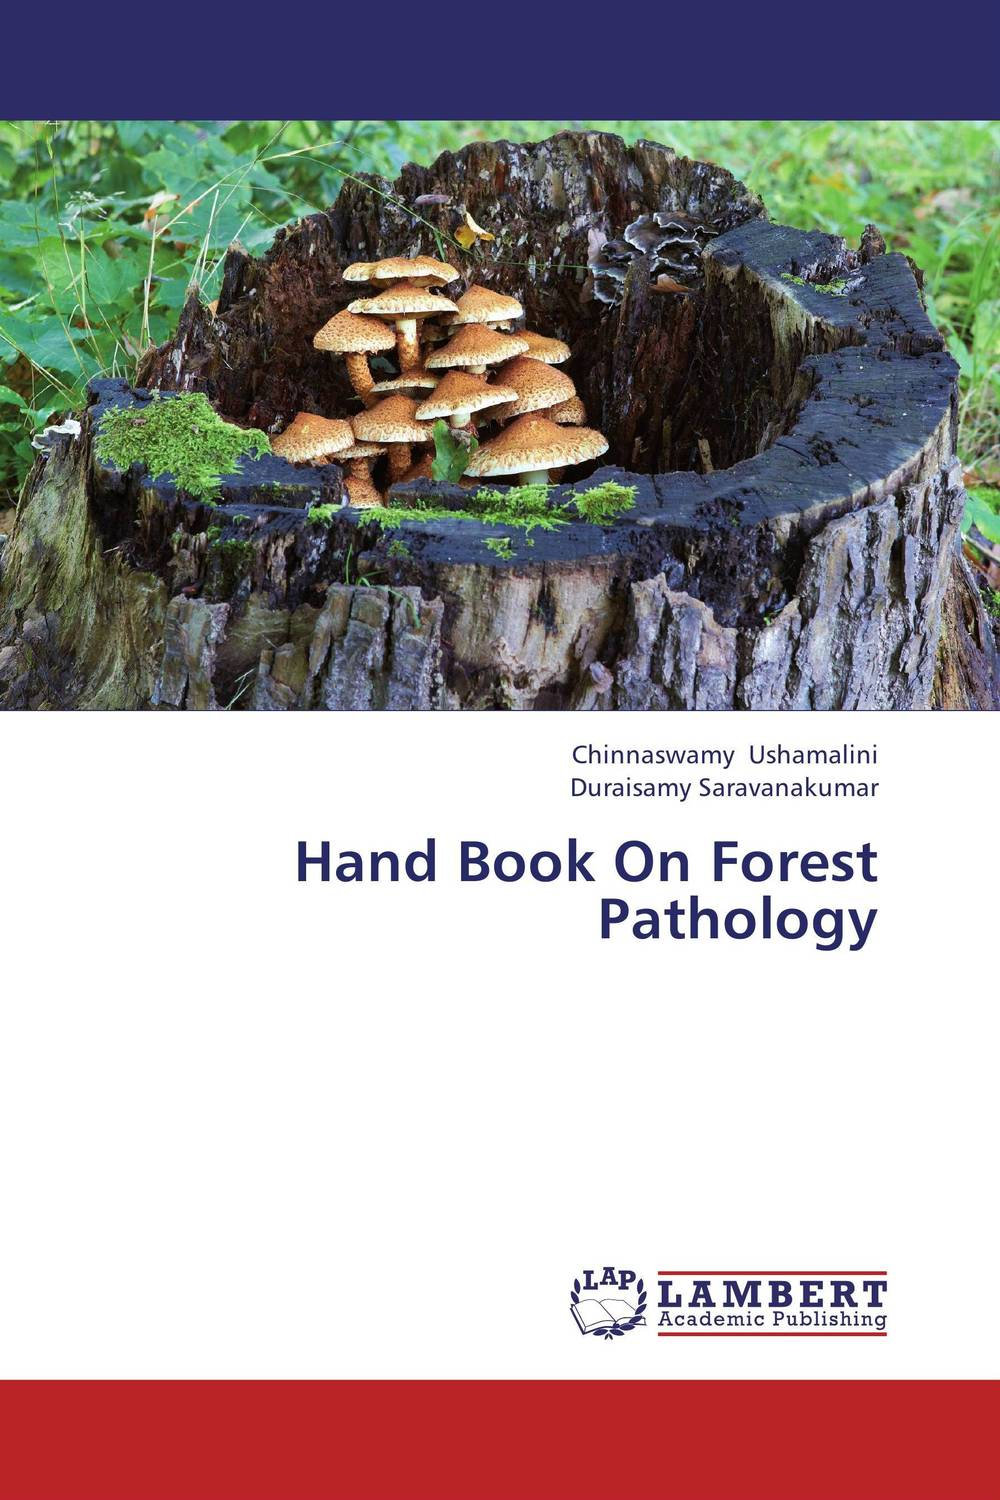 Hand Book On Forest Pathology among the lemon trees